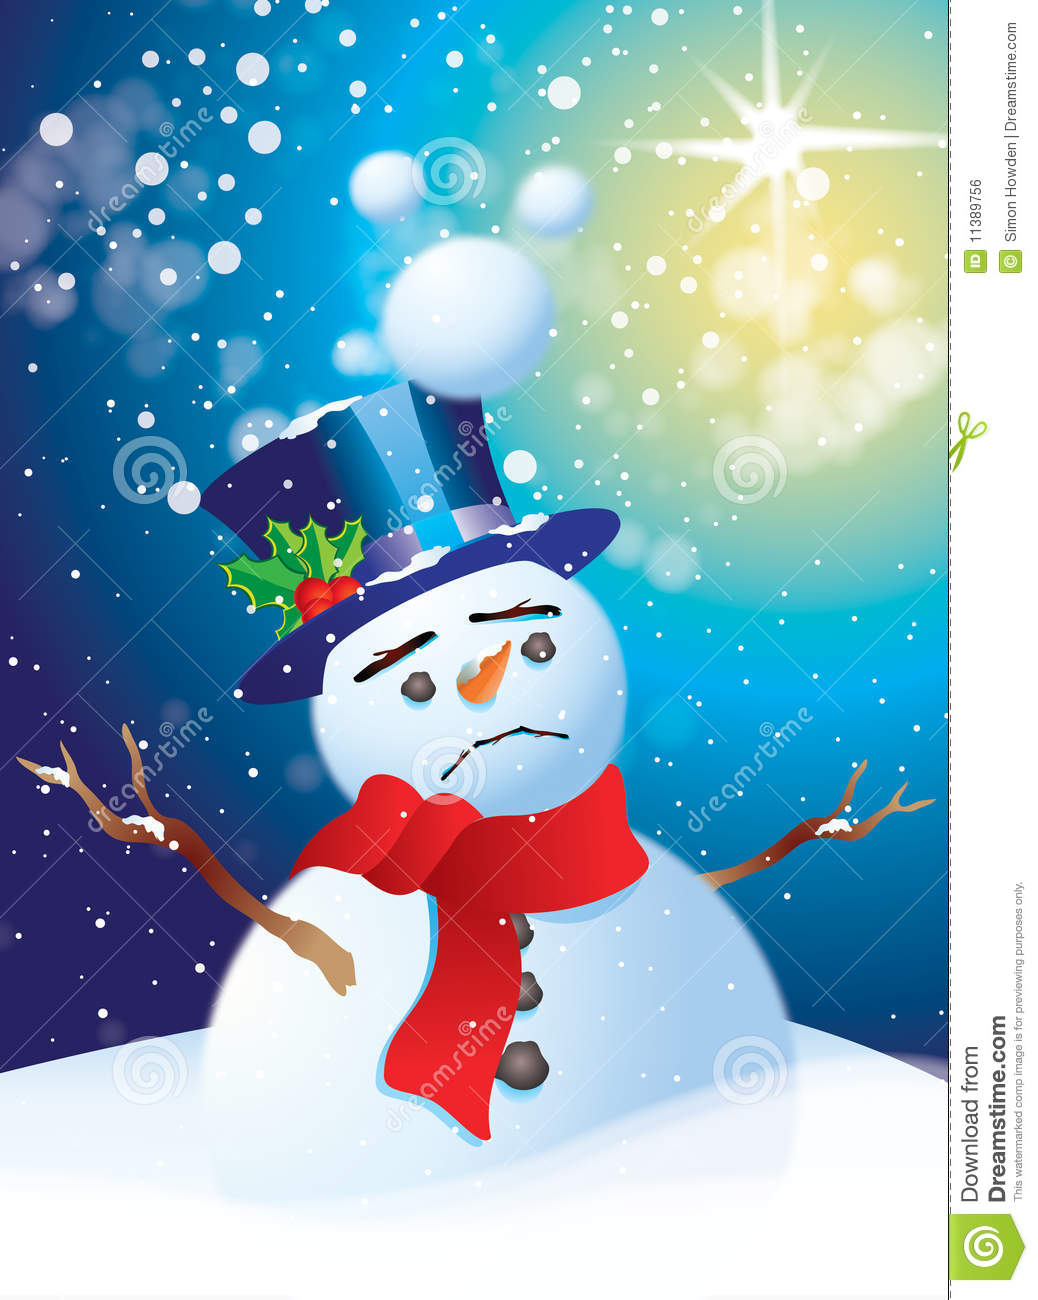 sad snowman royalty free stock image